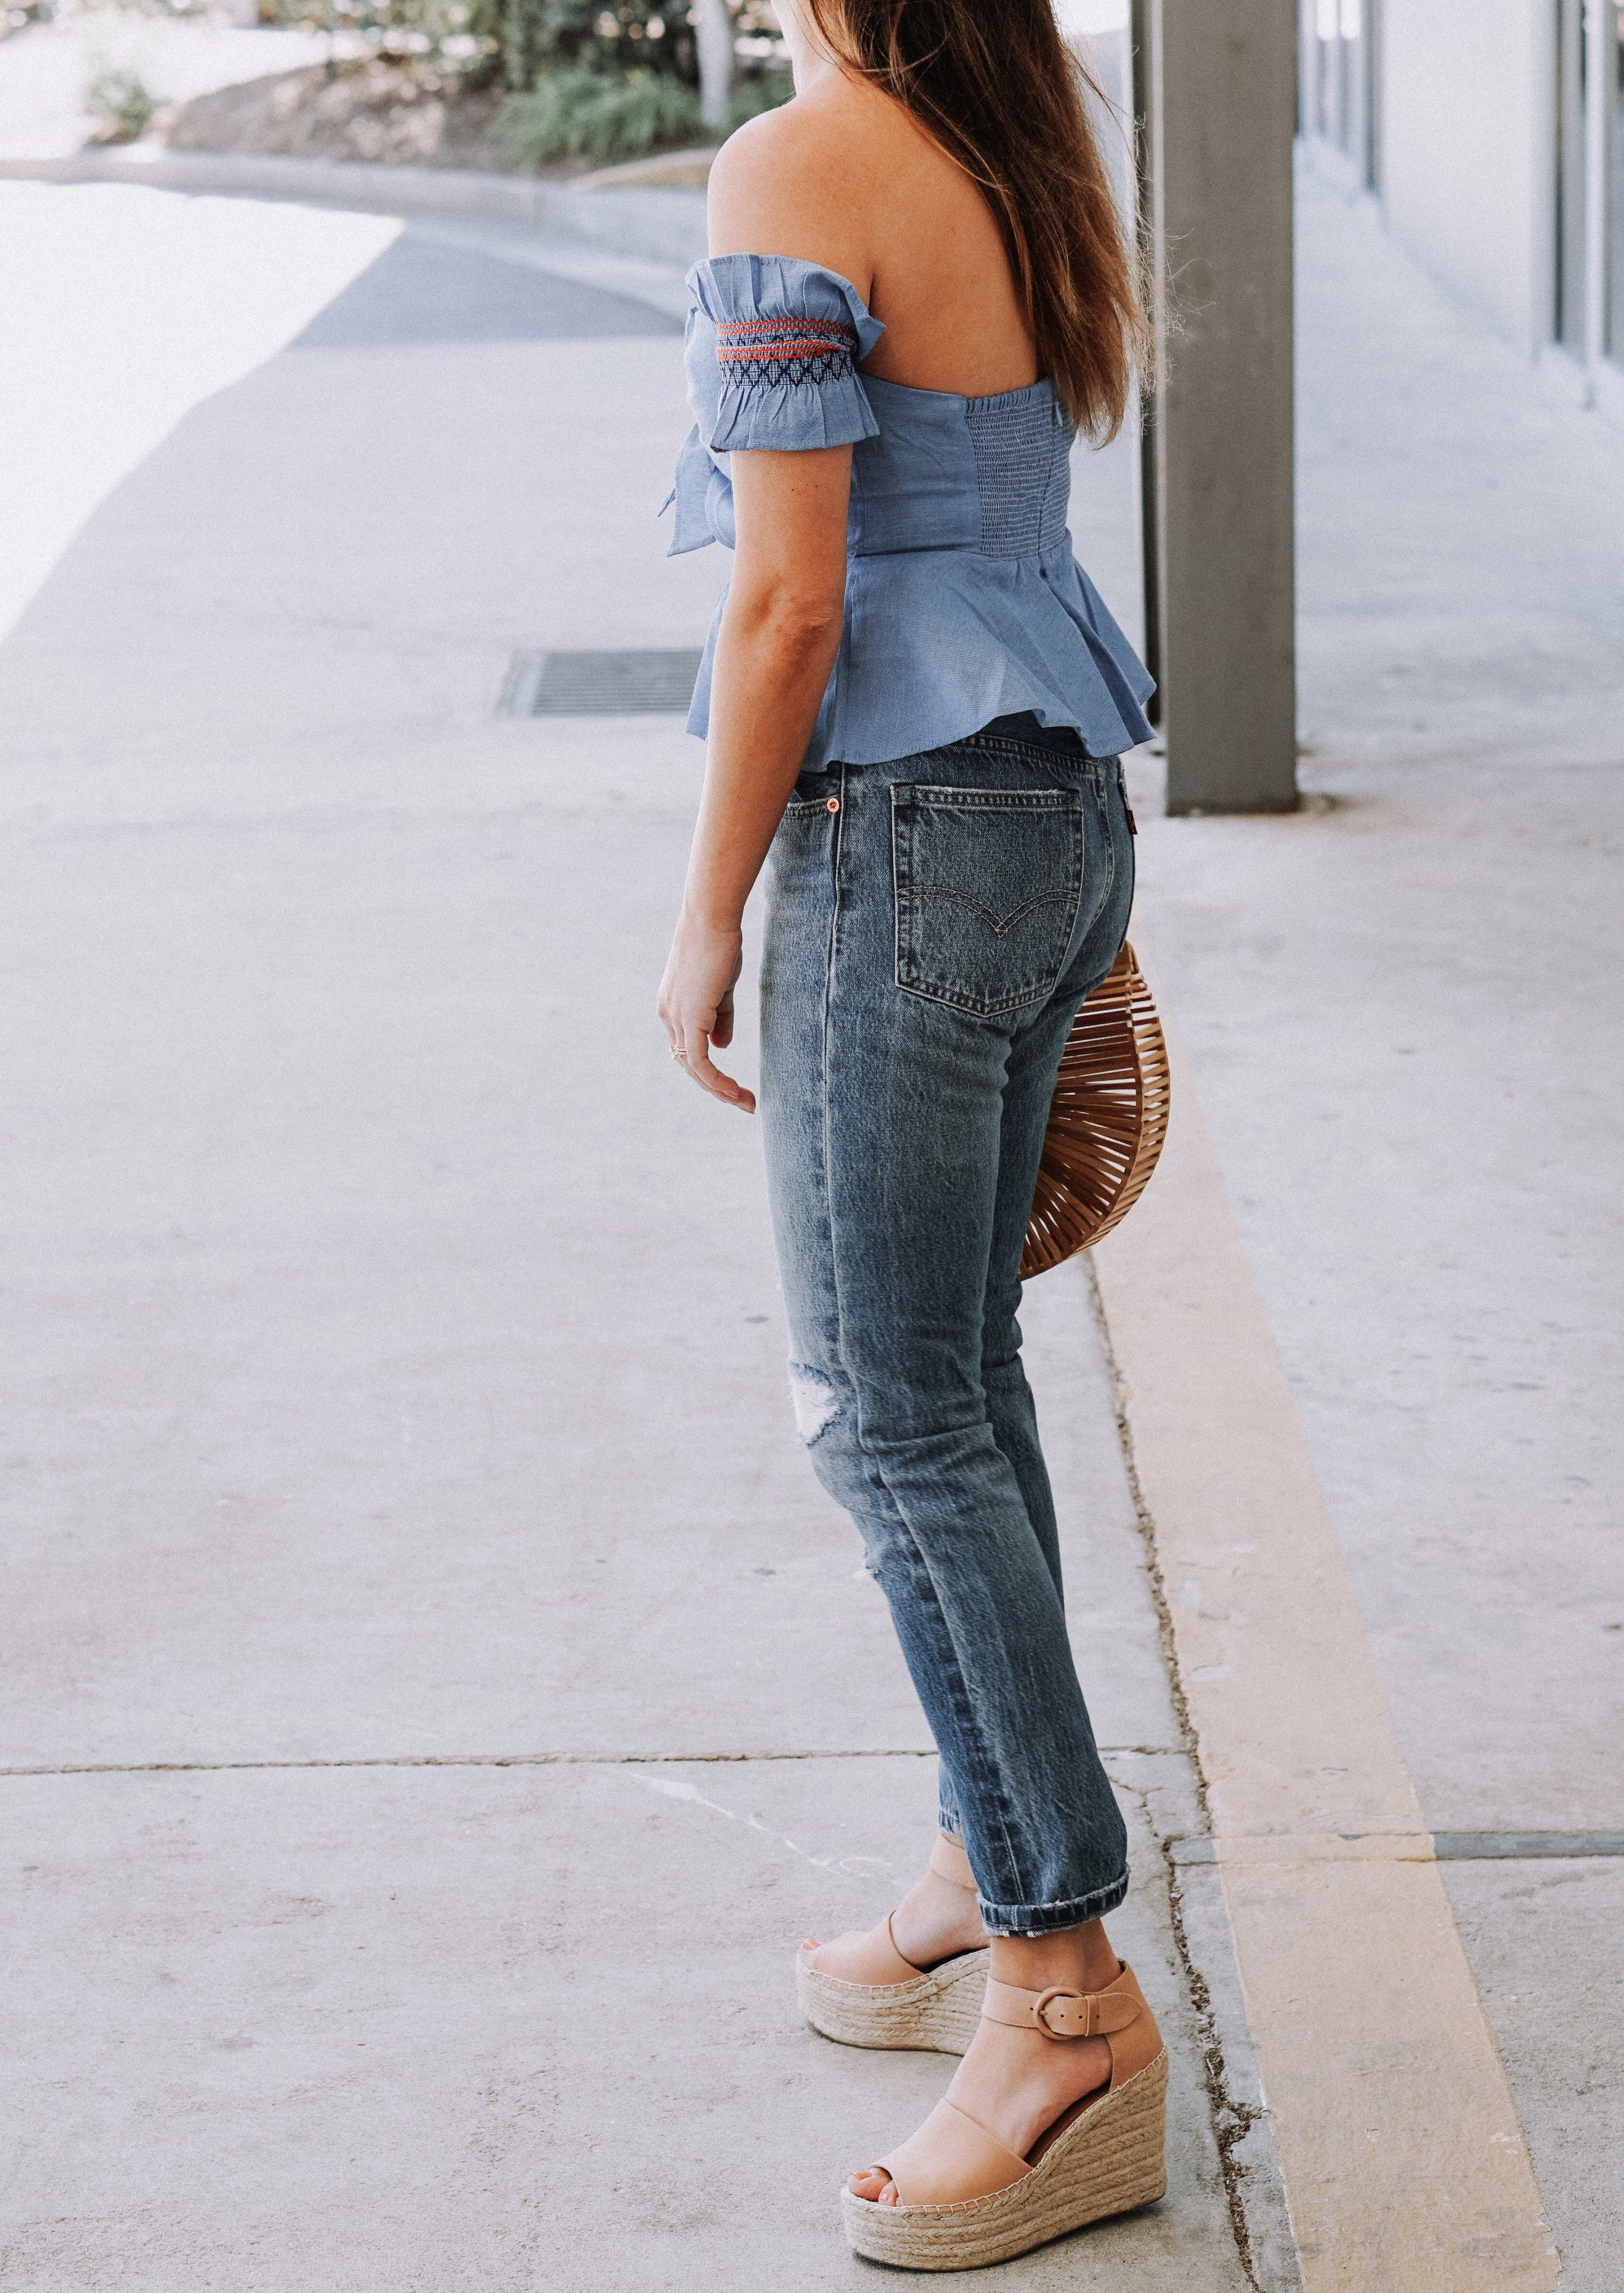 23d25a40991 Wearing Lately Post 1 | My Style | Marc fisher wedges, Jeans, How to ...